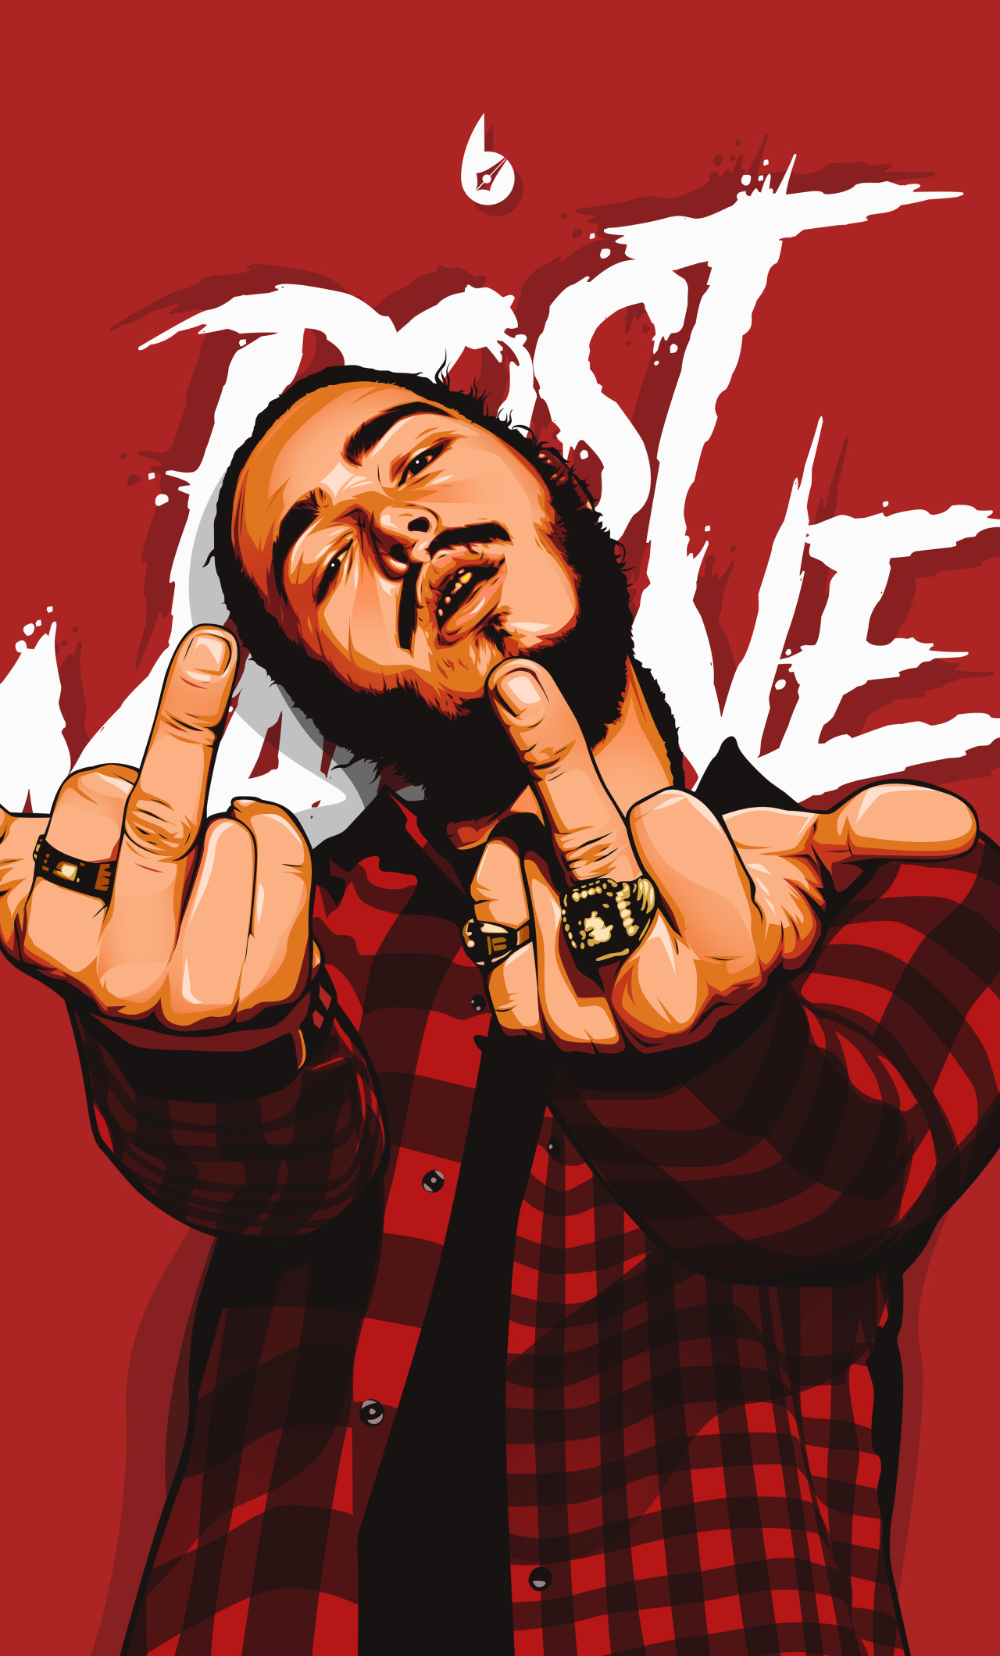 1280x2120 Post Malone Digital Art 4k Iphone 6 Hd 4k Wallpapers Images Backgrounds Photos And Pictures In 2020 Post Malone Wallpaper Post Malone Hip Hop Art